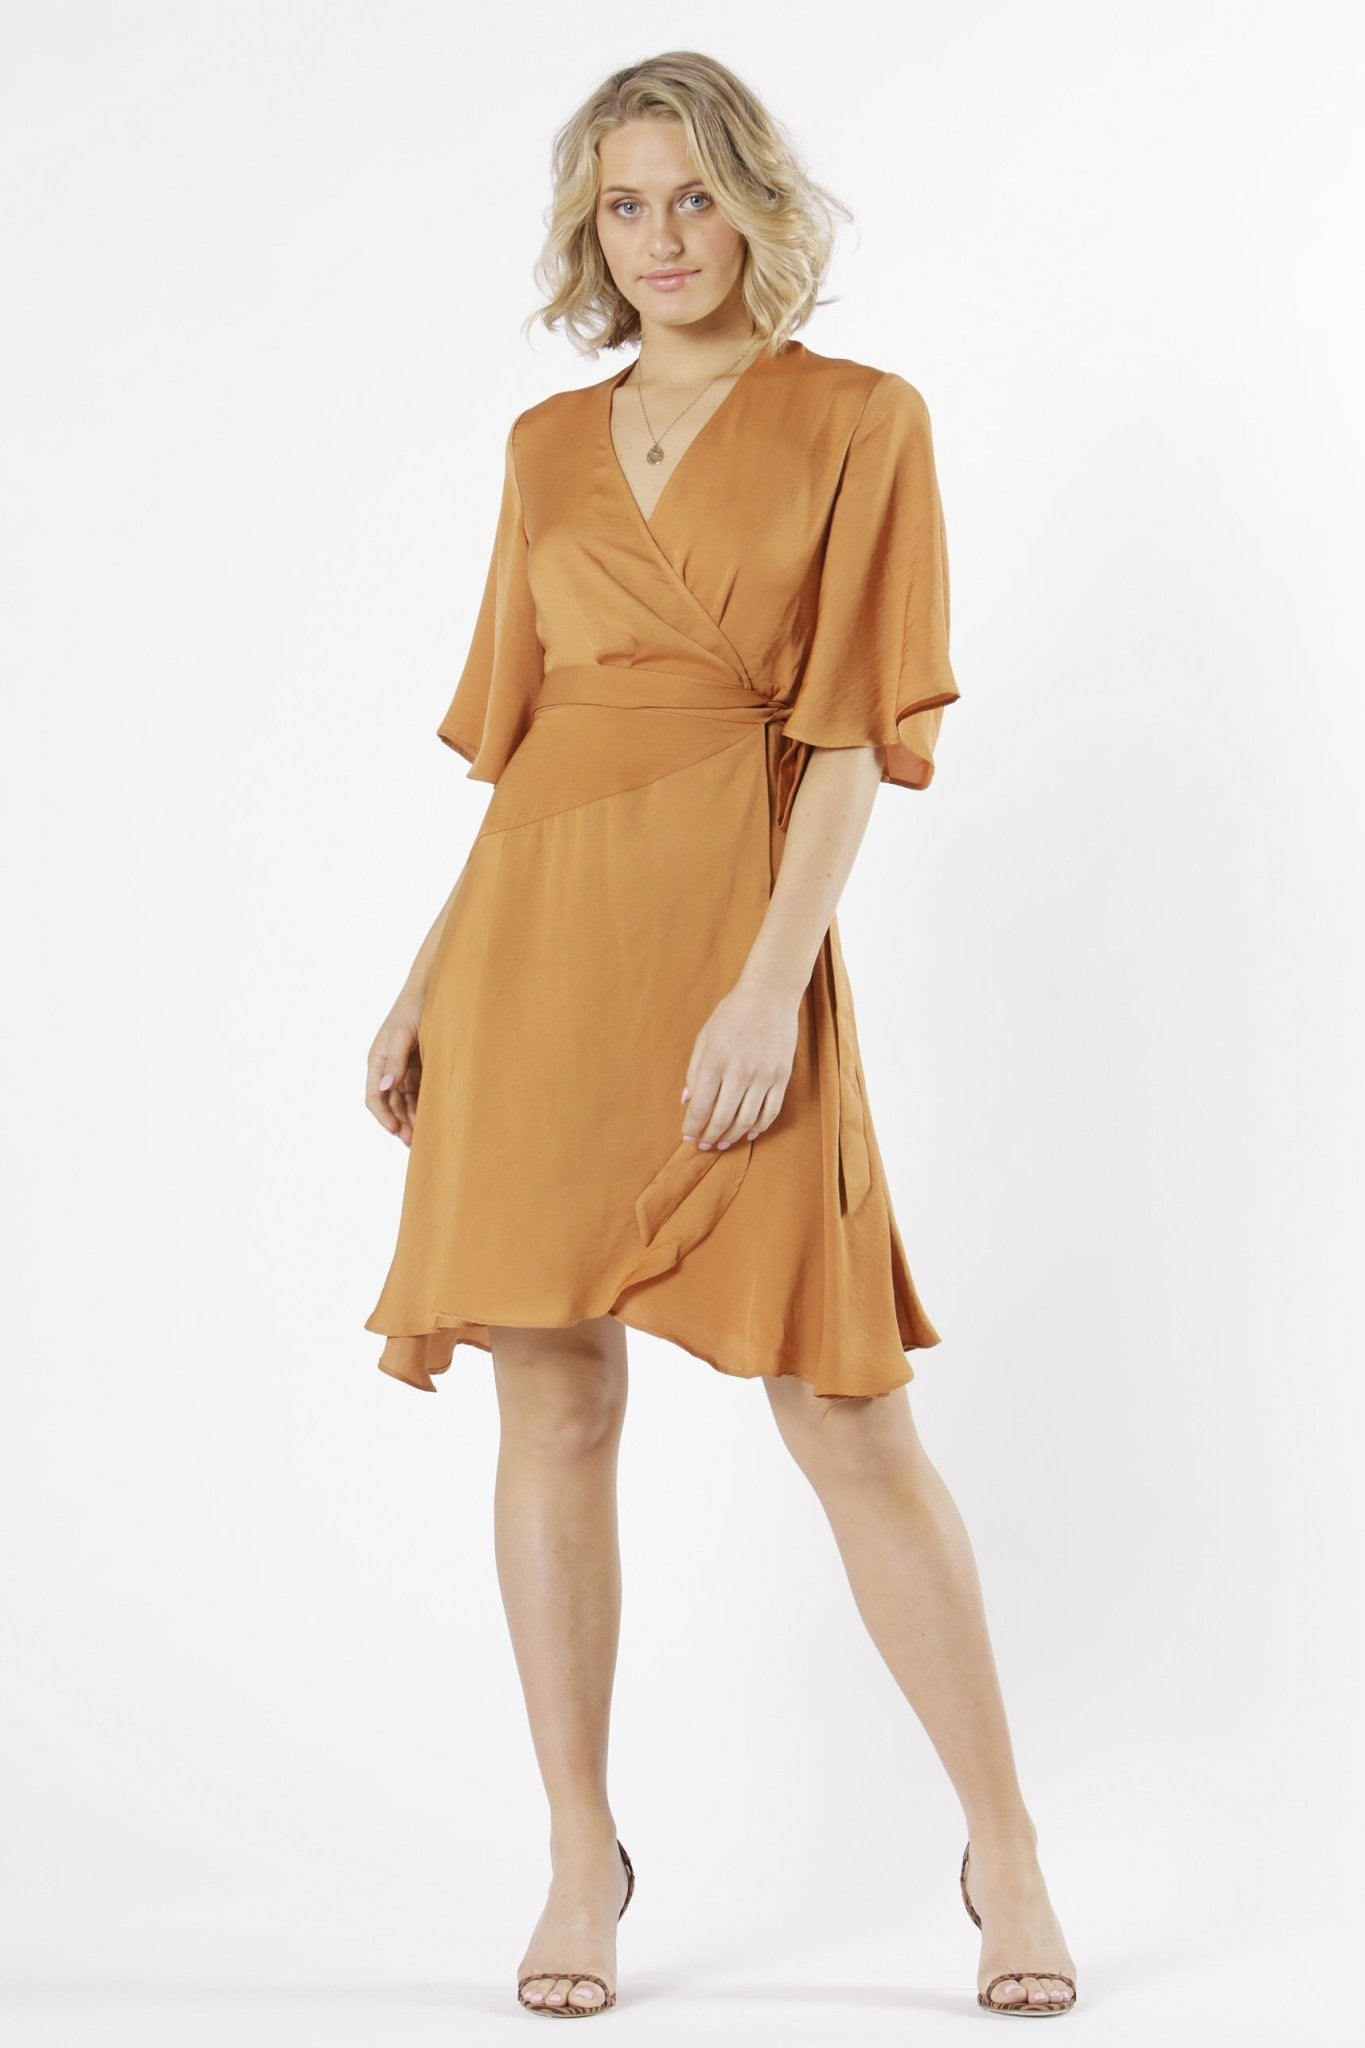 Fate + Becker Mariella Wrap Dress in Apricot - Hey Sara